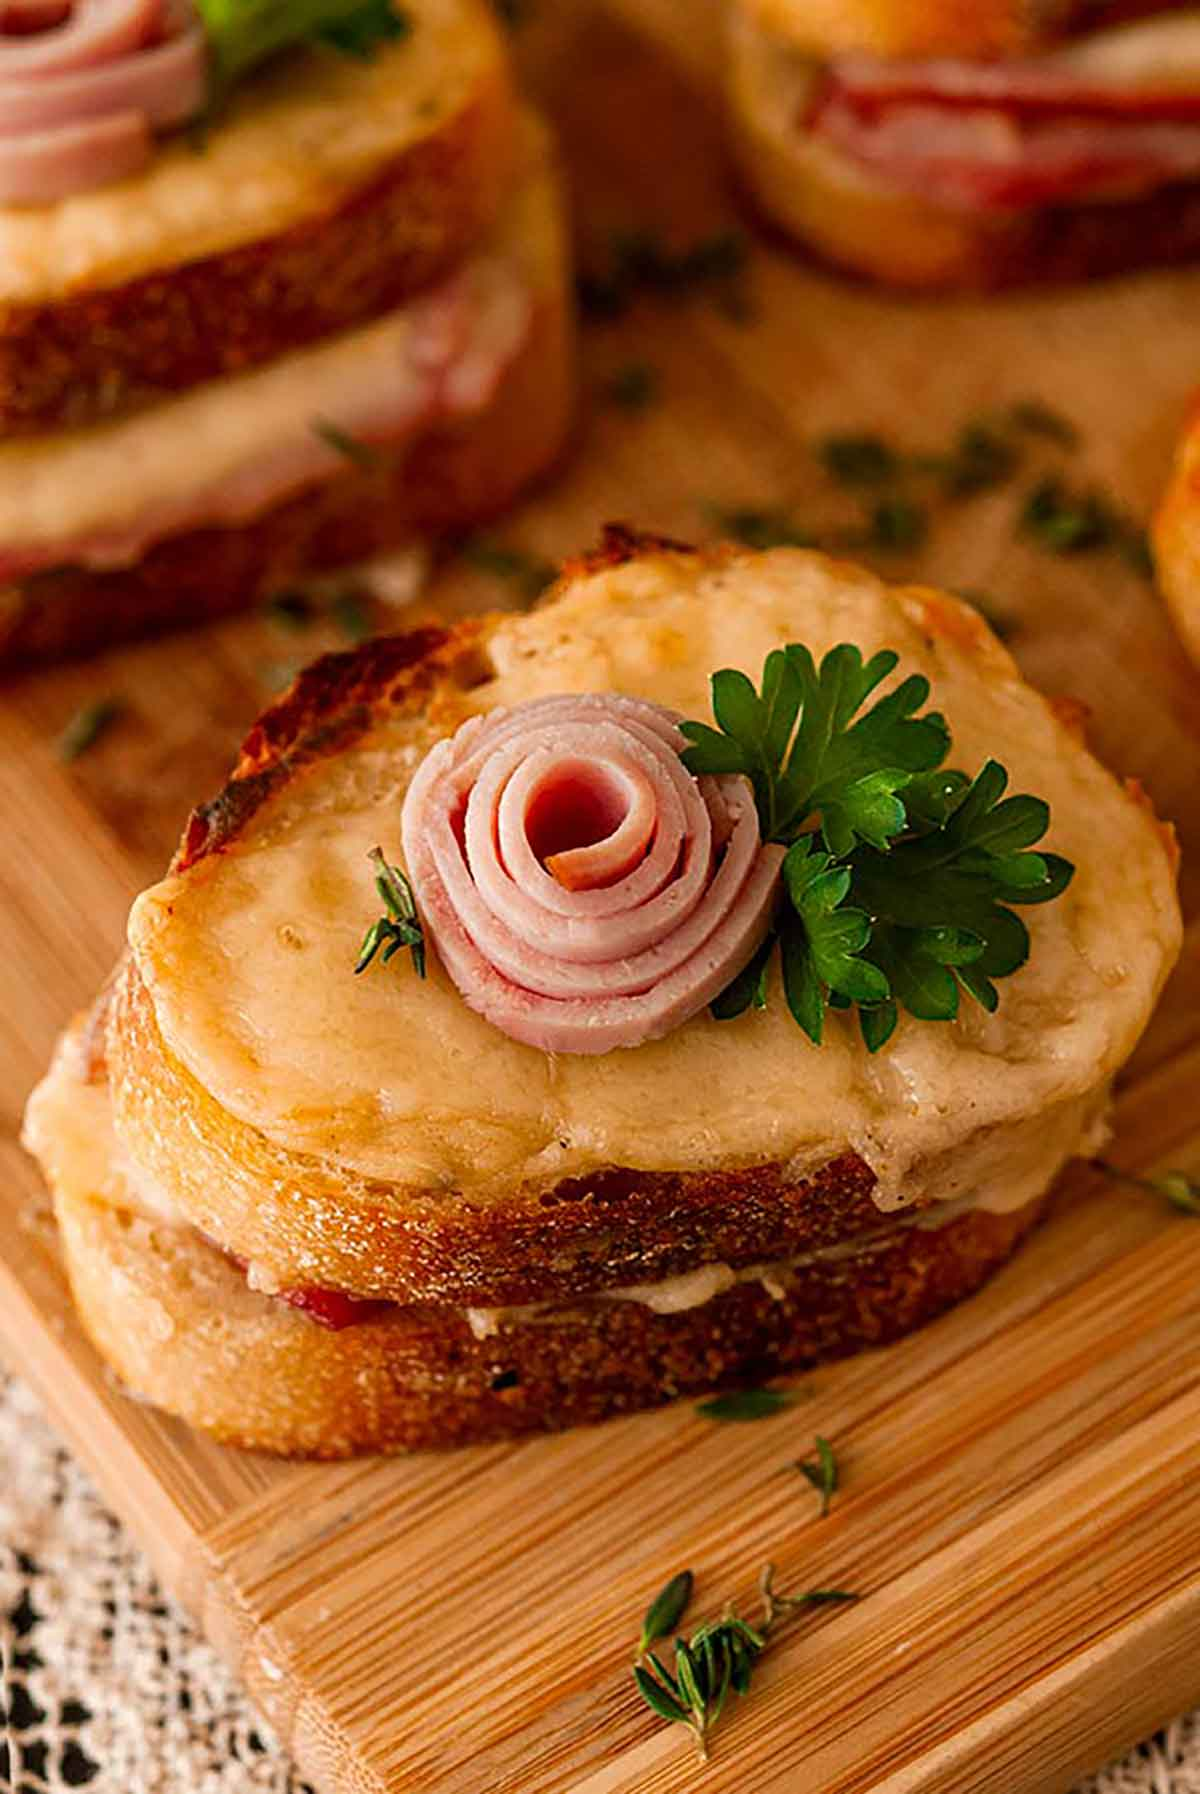 A mini croque monsieur with a small ham rose garnish and parsley on a decorative, antique plate.